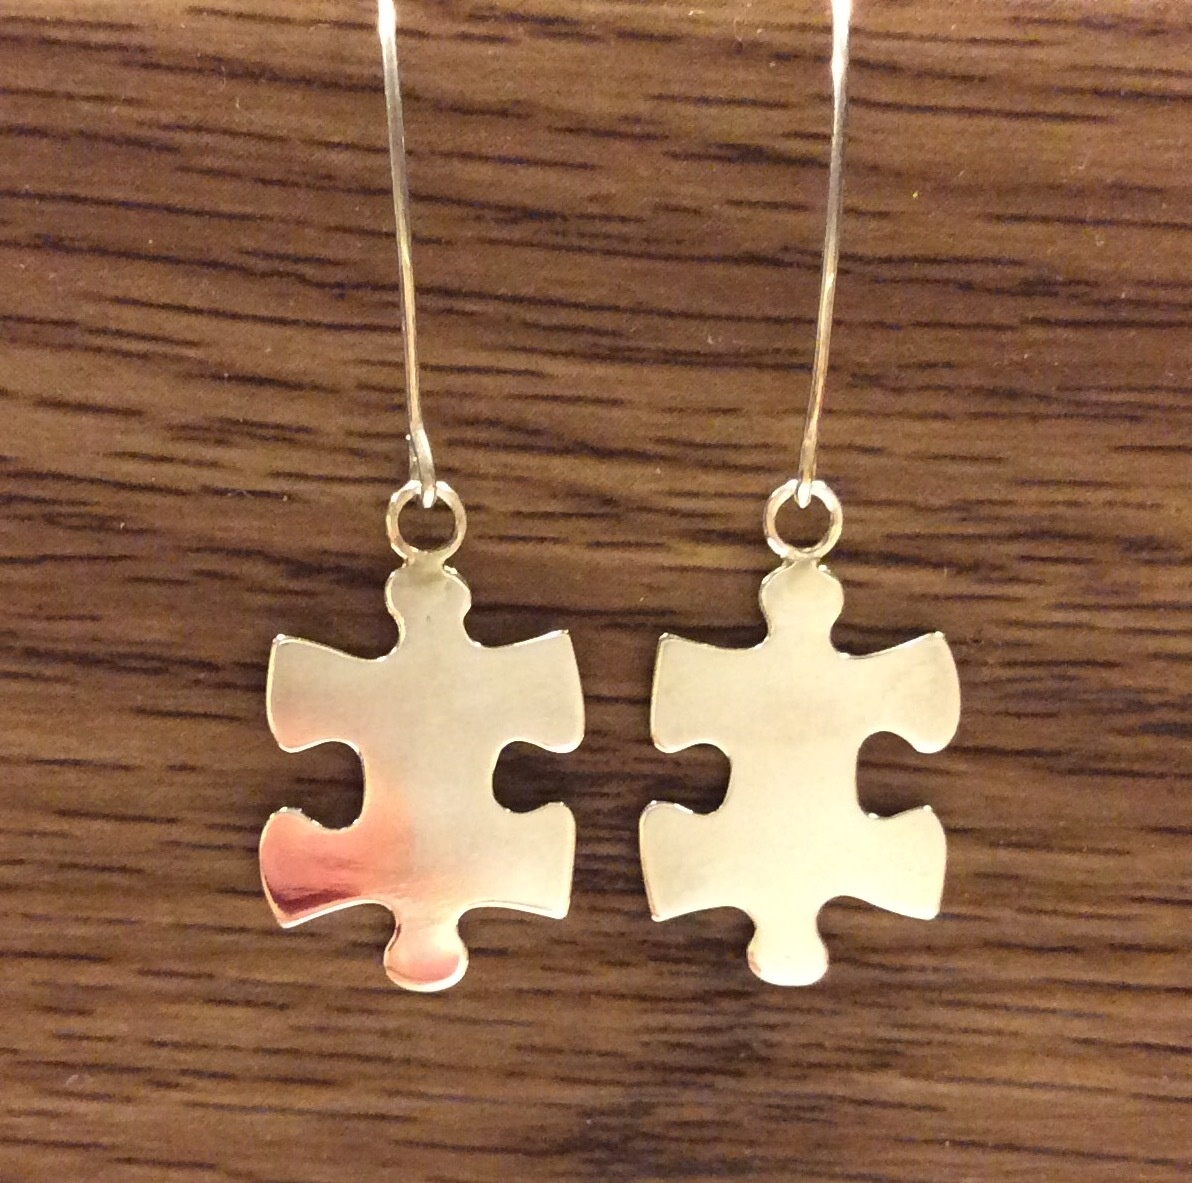 Puzzle piece sterling silver earrings